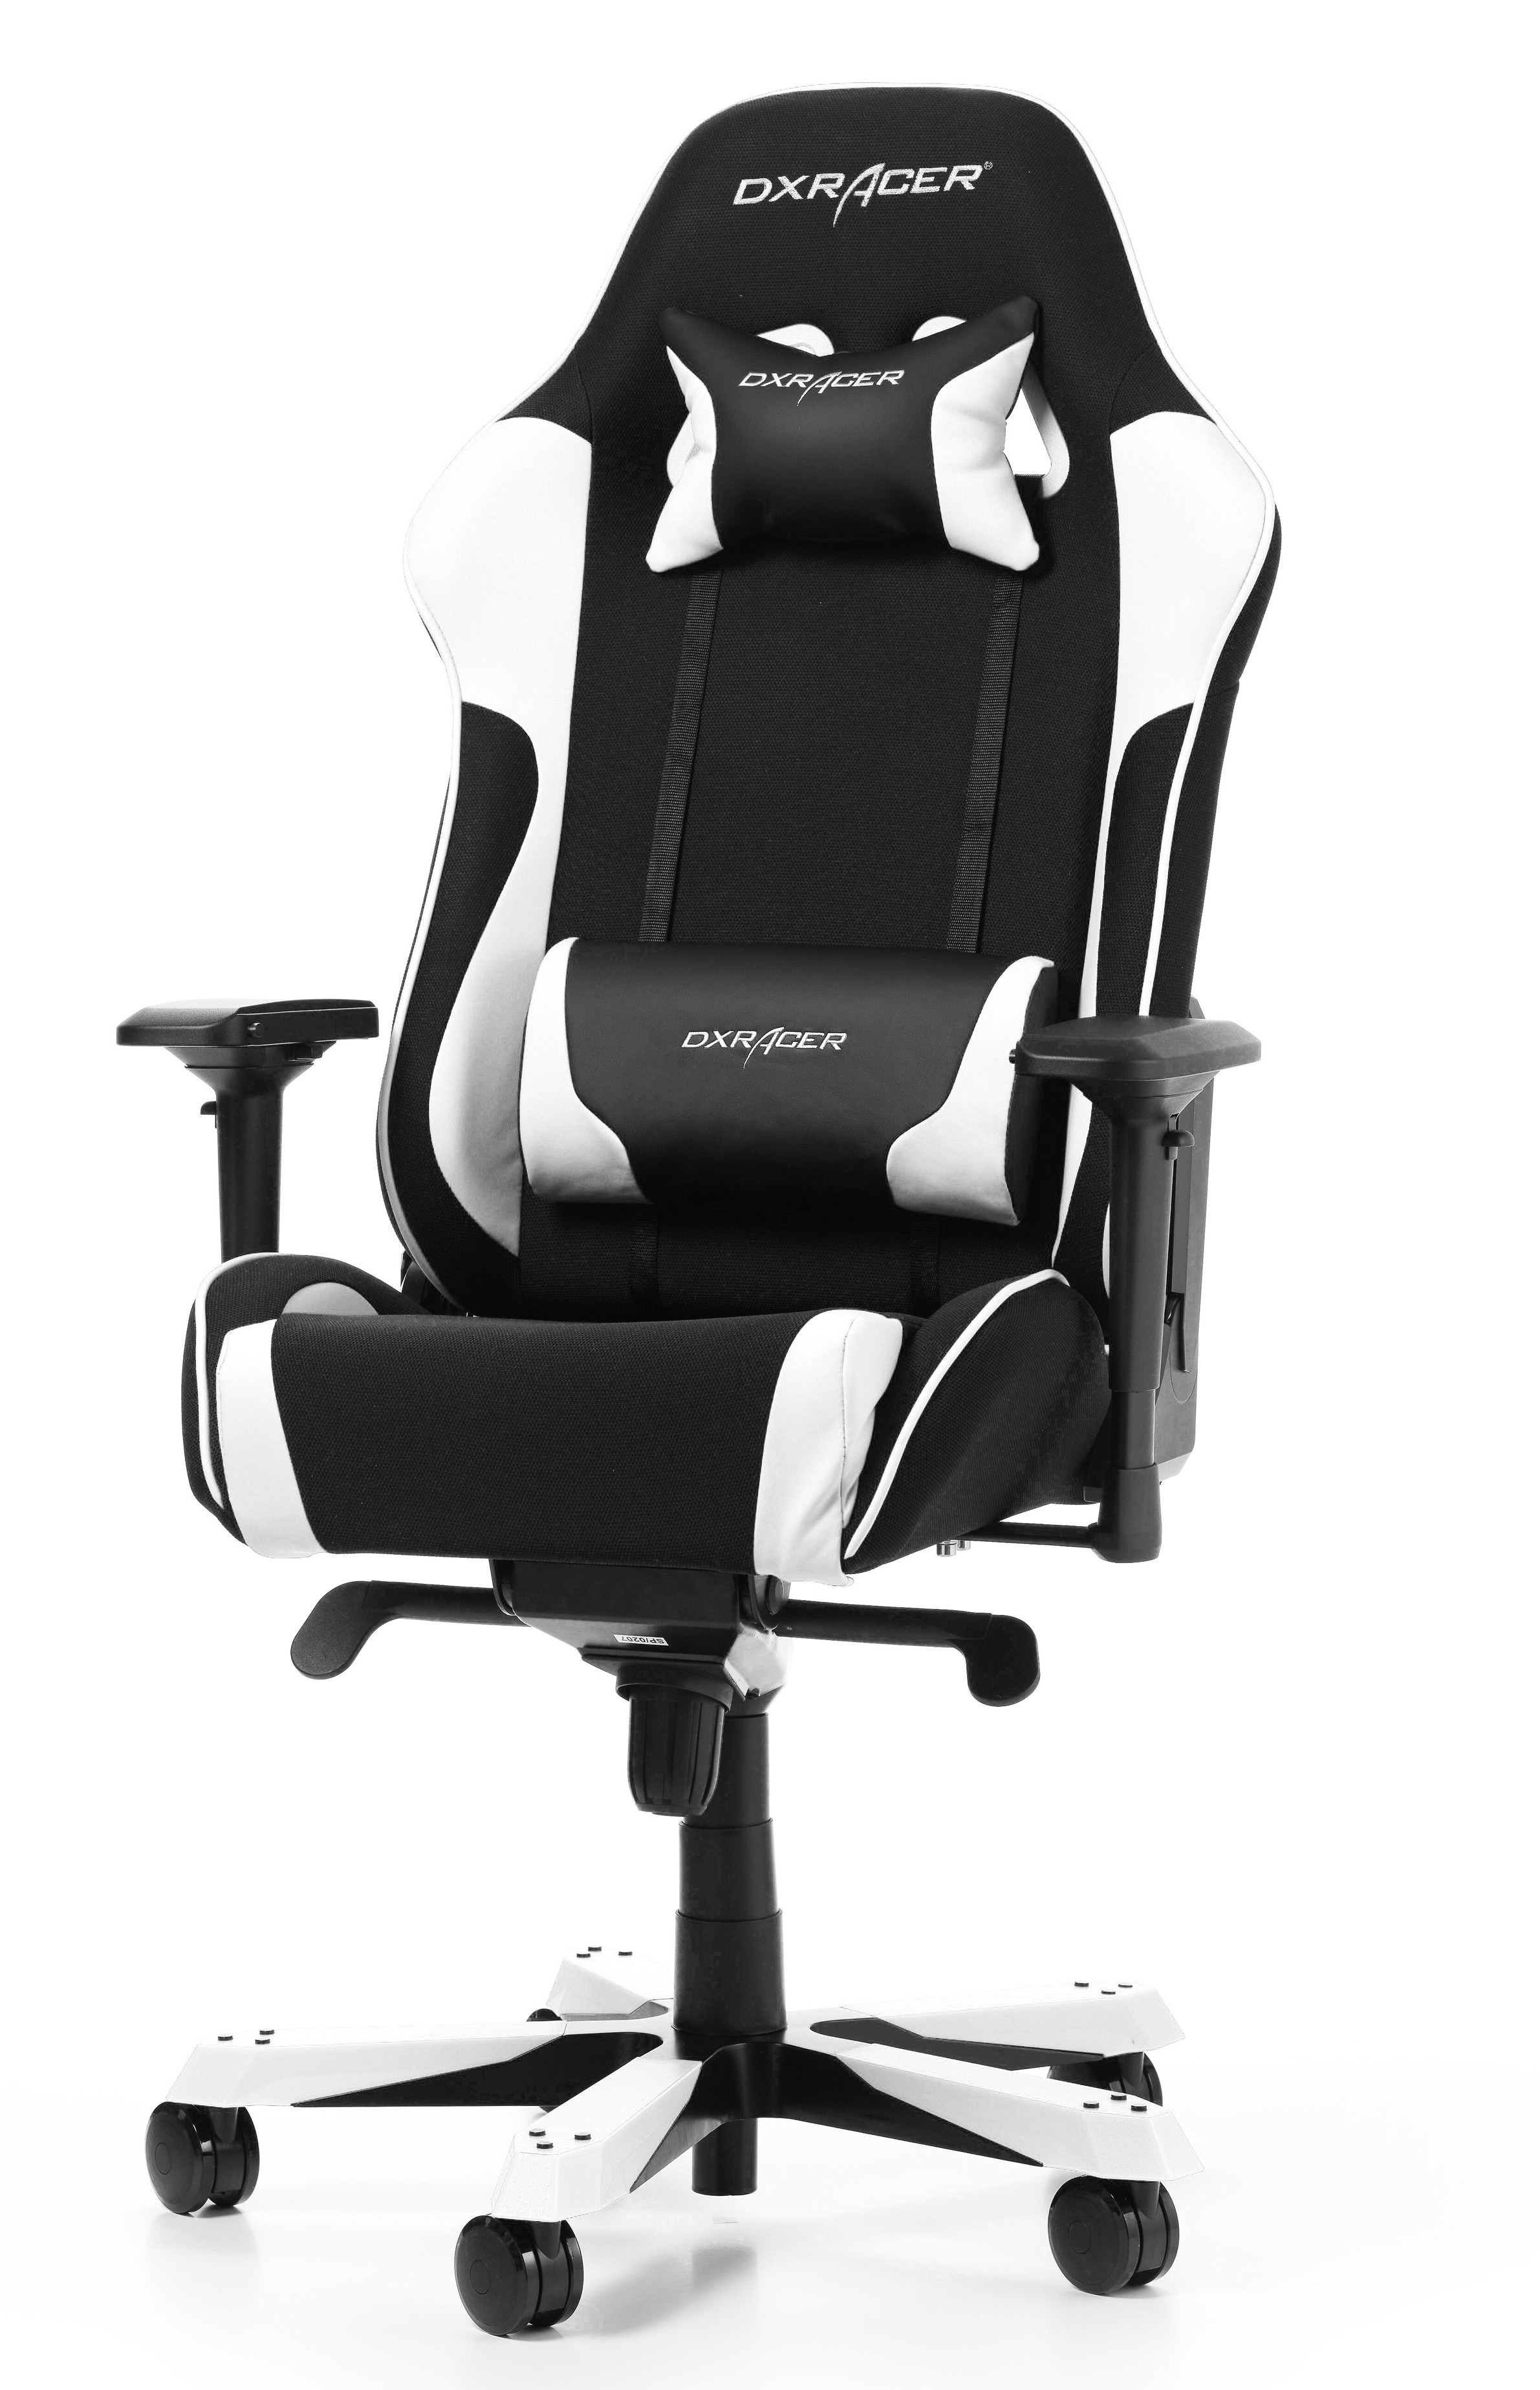 GAMING CHAIR DXRACER KING SERIES K11-NW WHITE